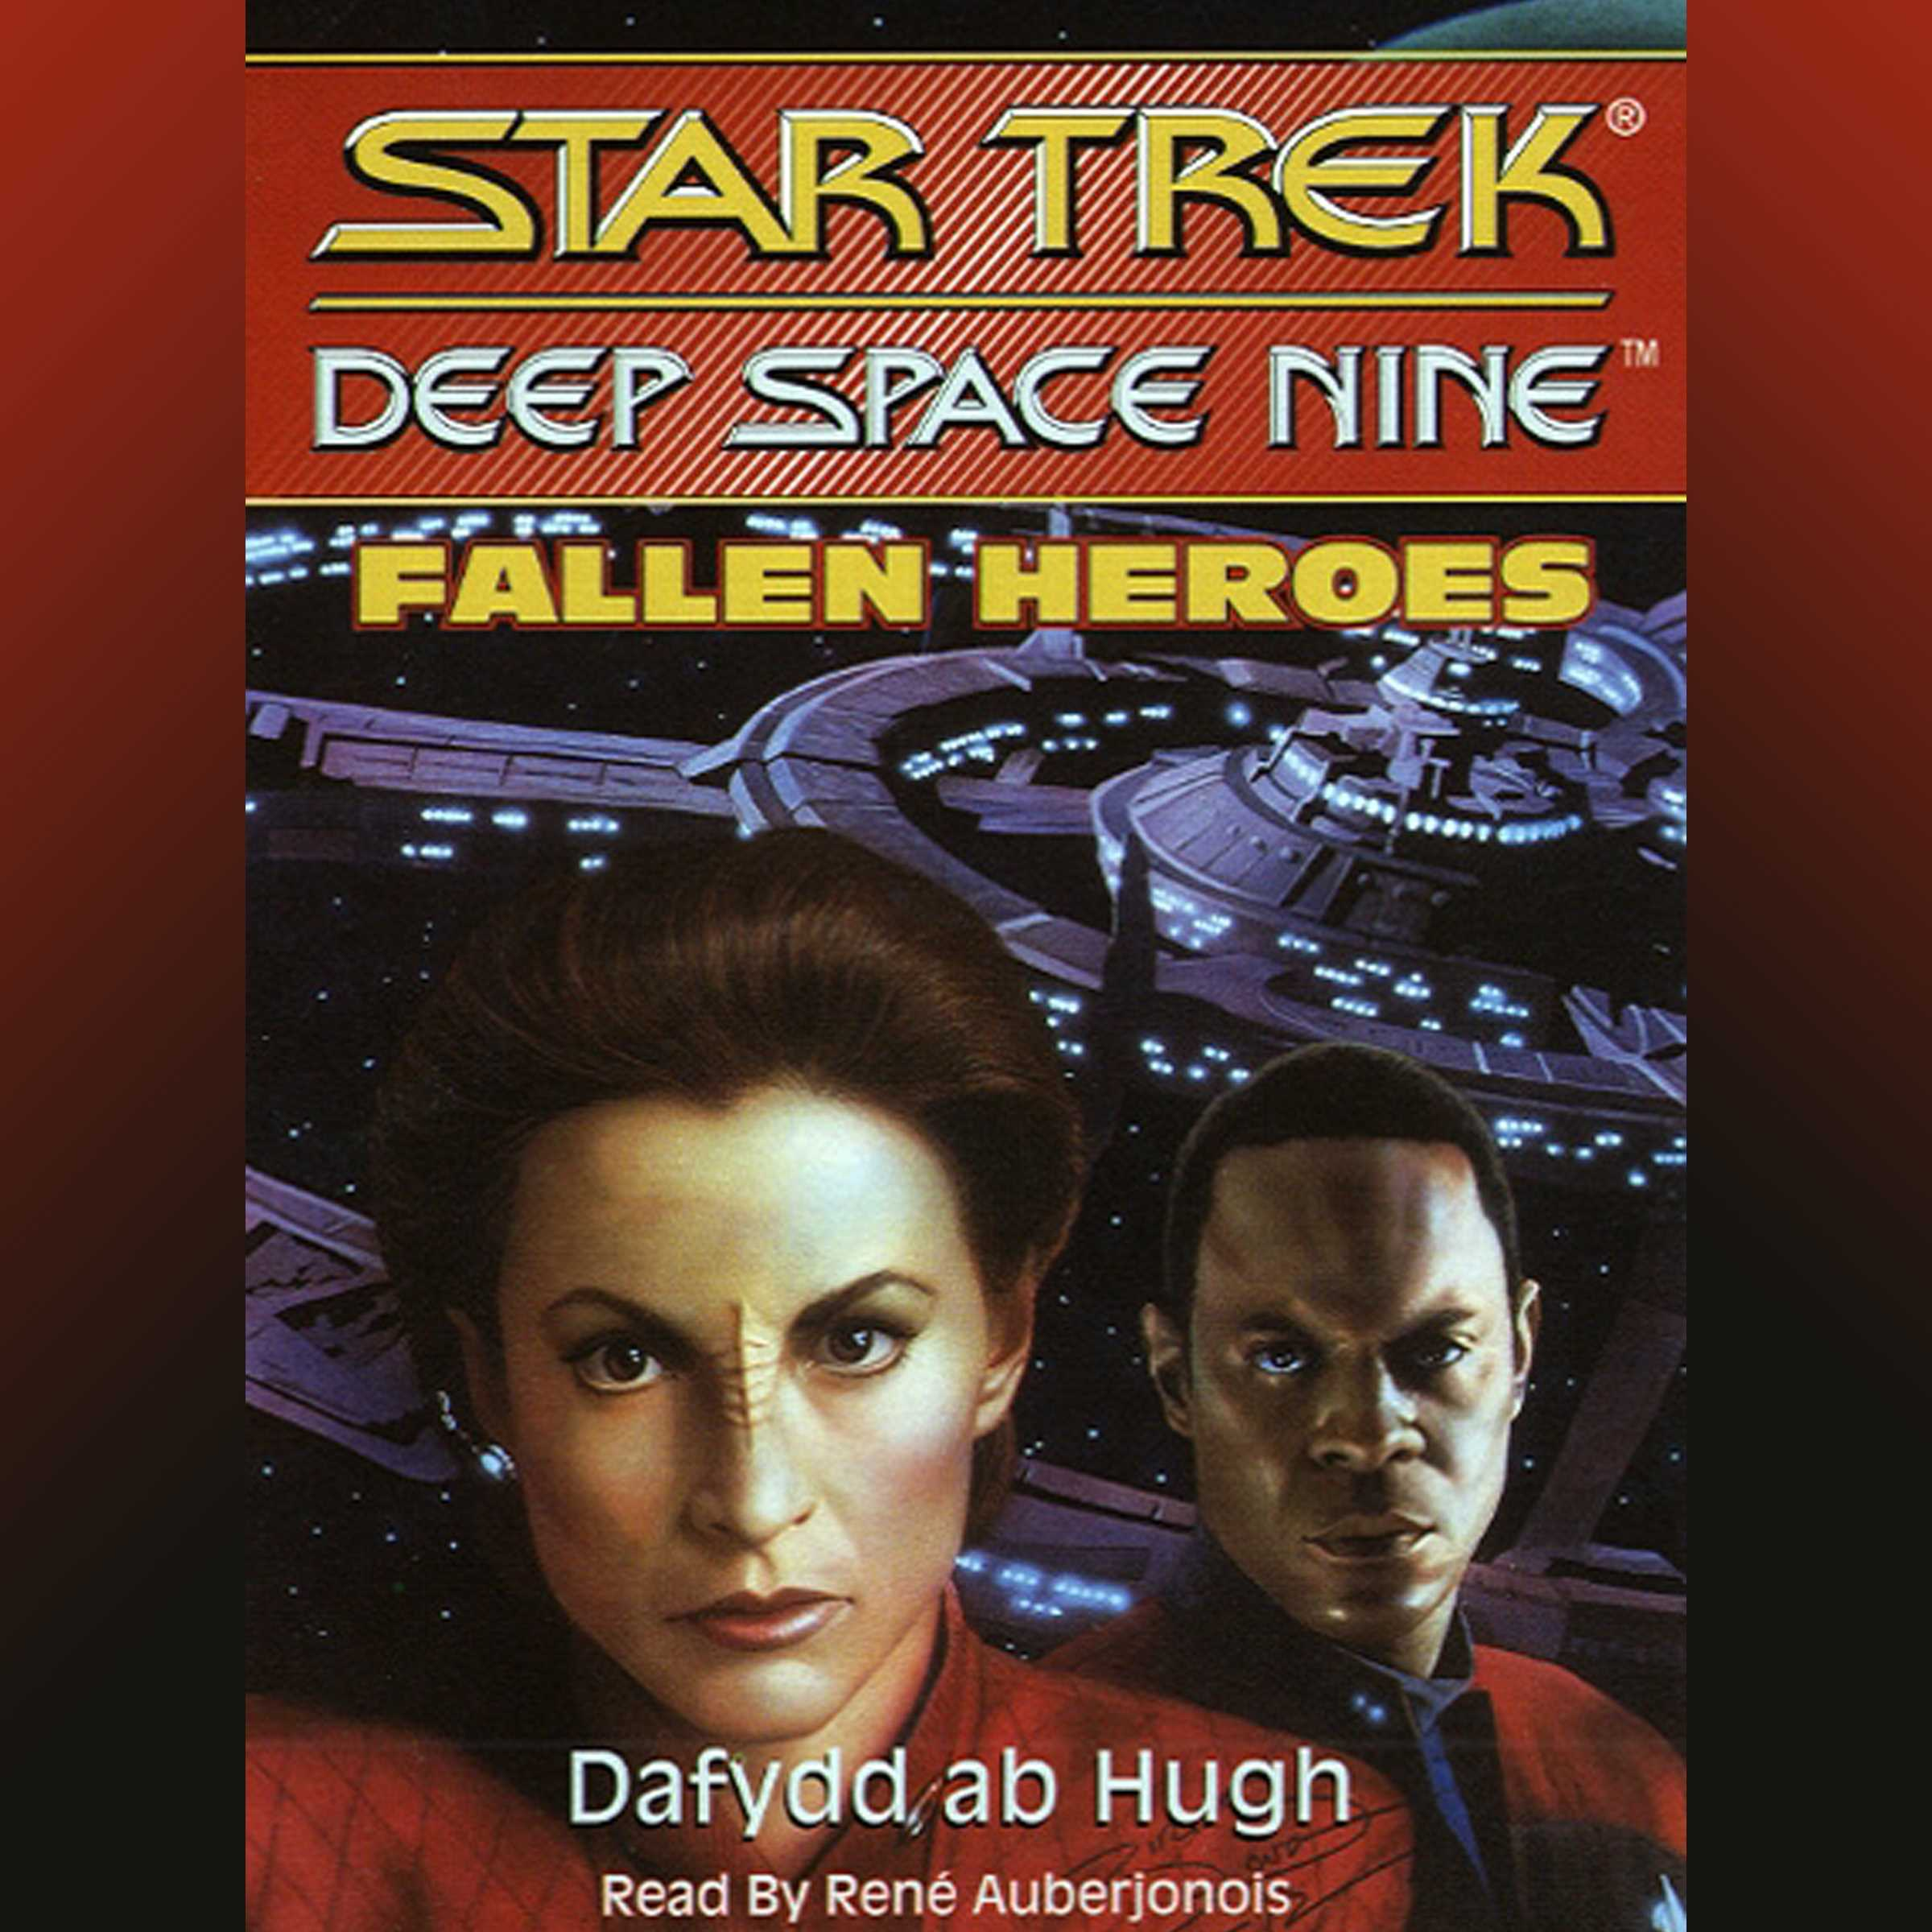 Star-trek-deep-space-nine-fallen-heroes-9780743546232_hr